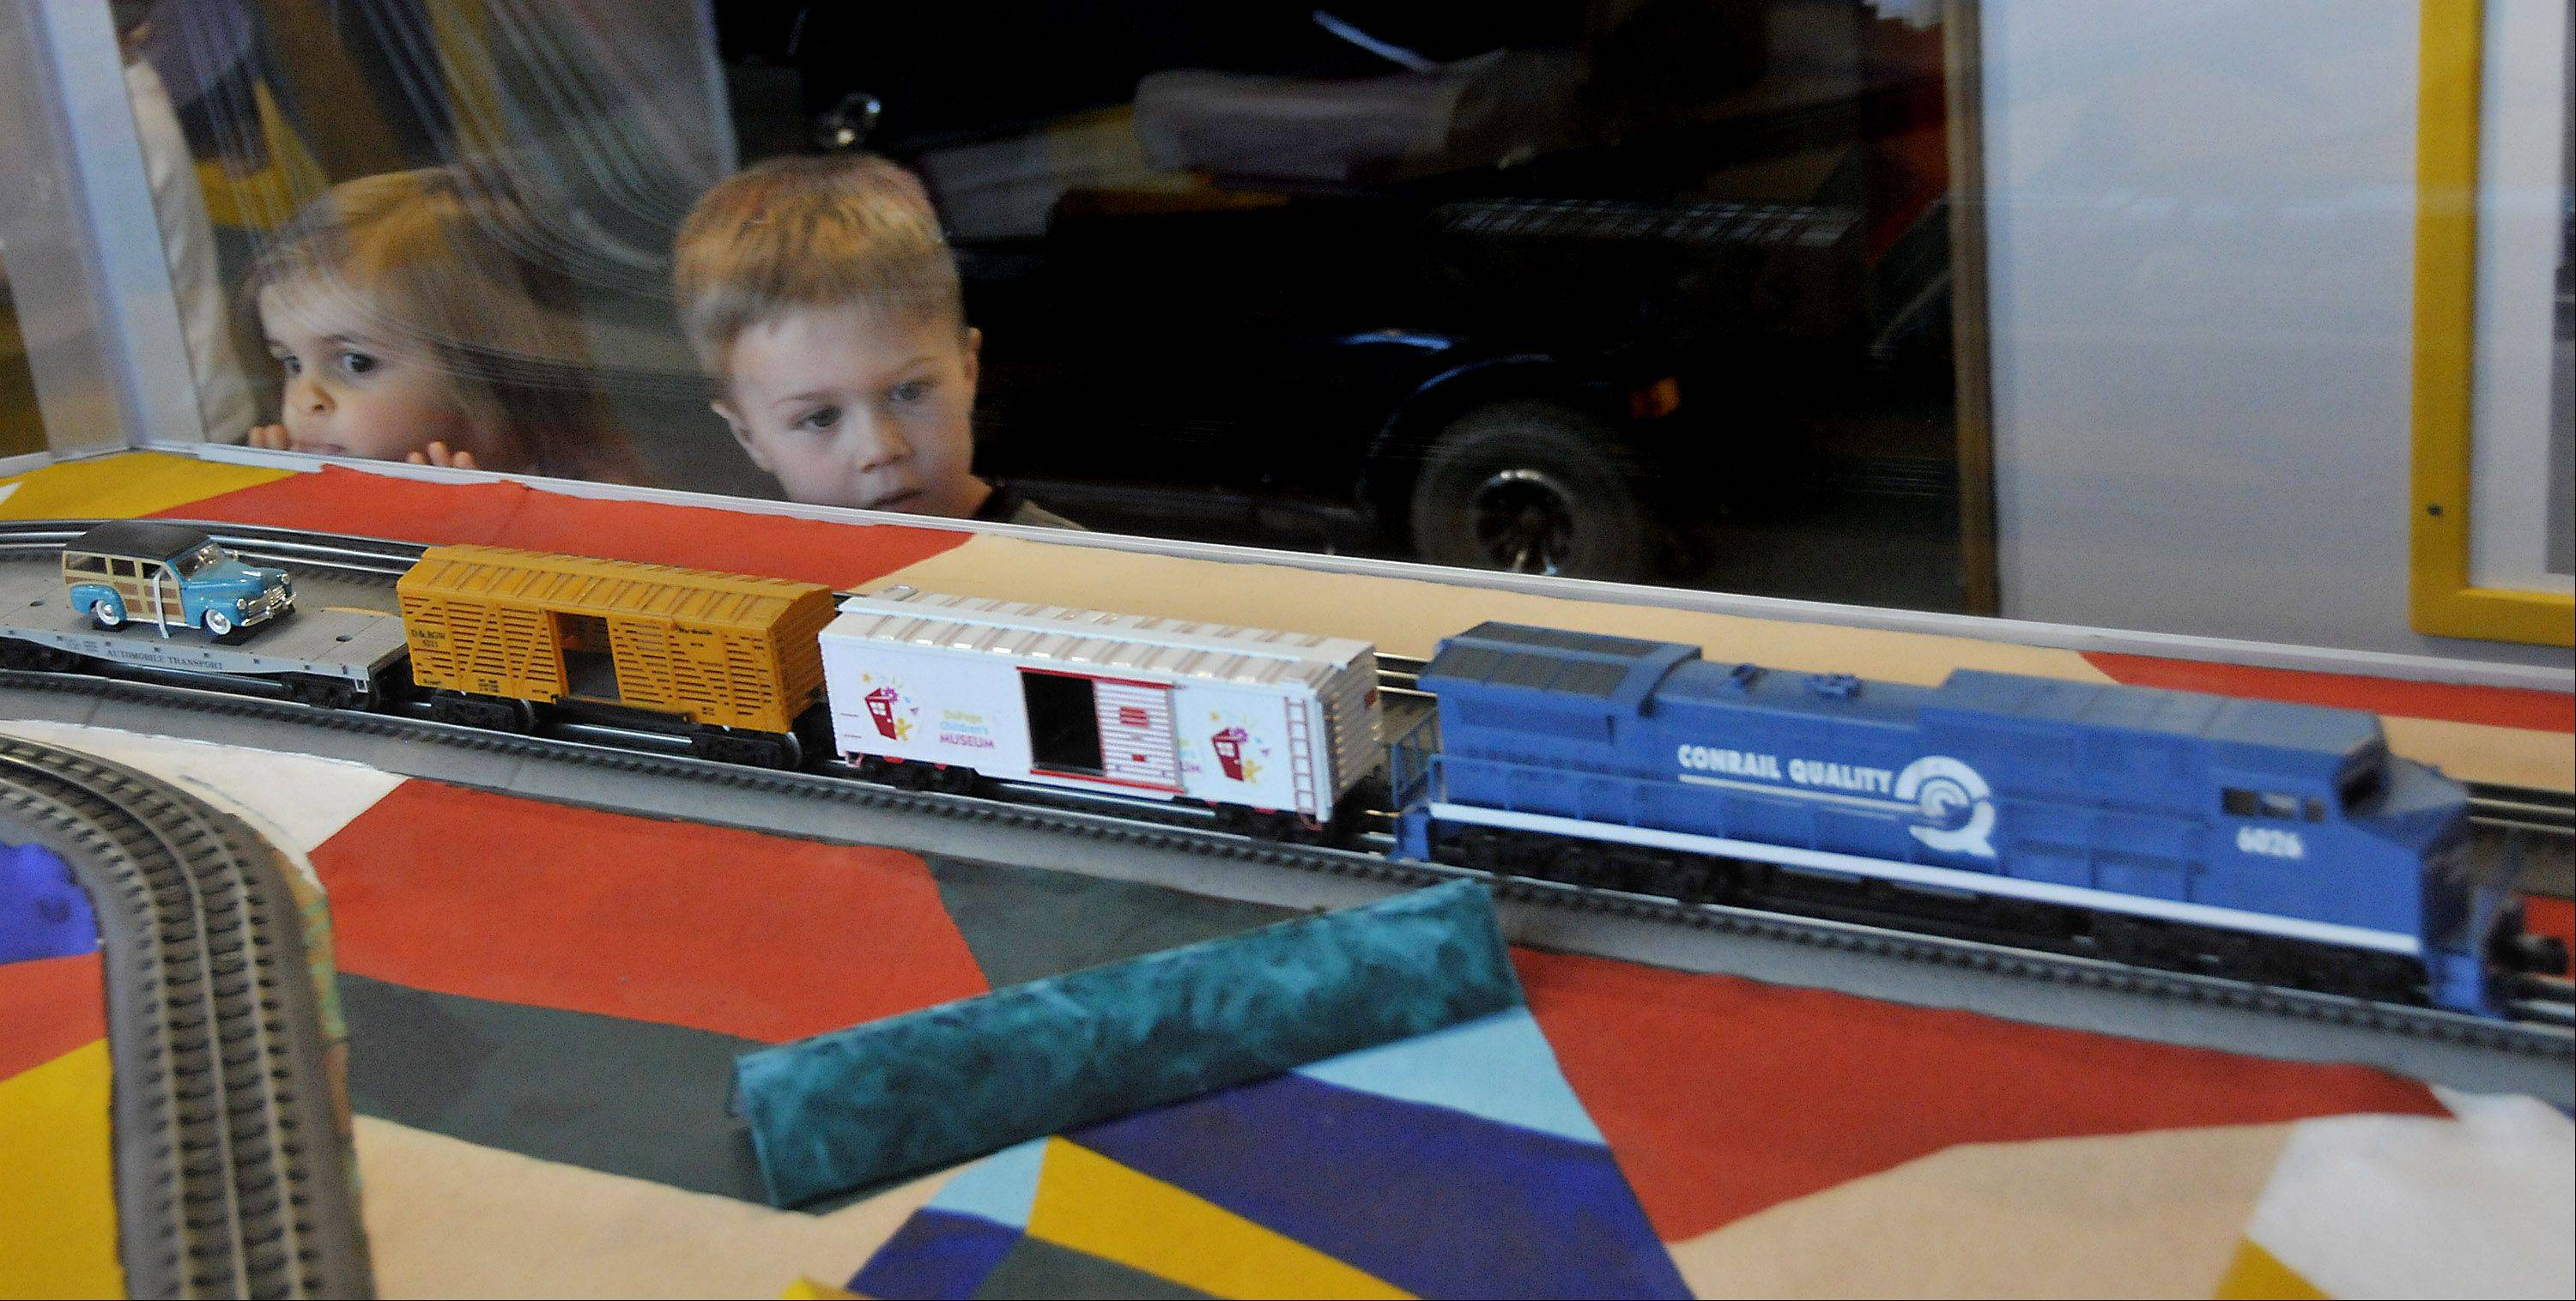 Kids watch the trains go around in the revamped electric model train exhibit that features colorful shapes instead of the traditional, scenic layout at the DuPage Children's Museum in Naperville.